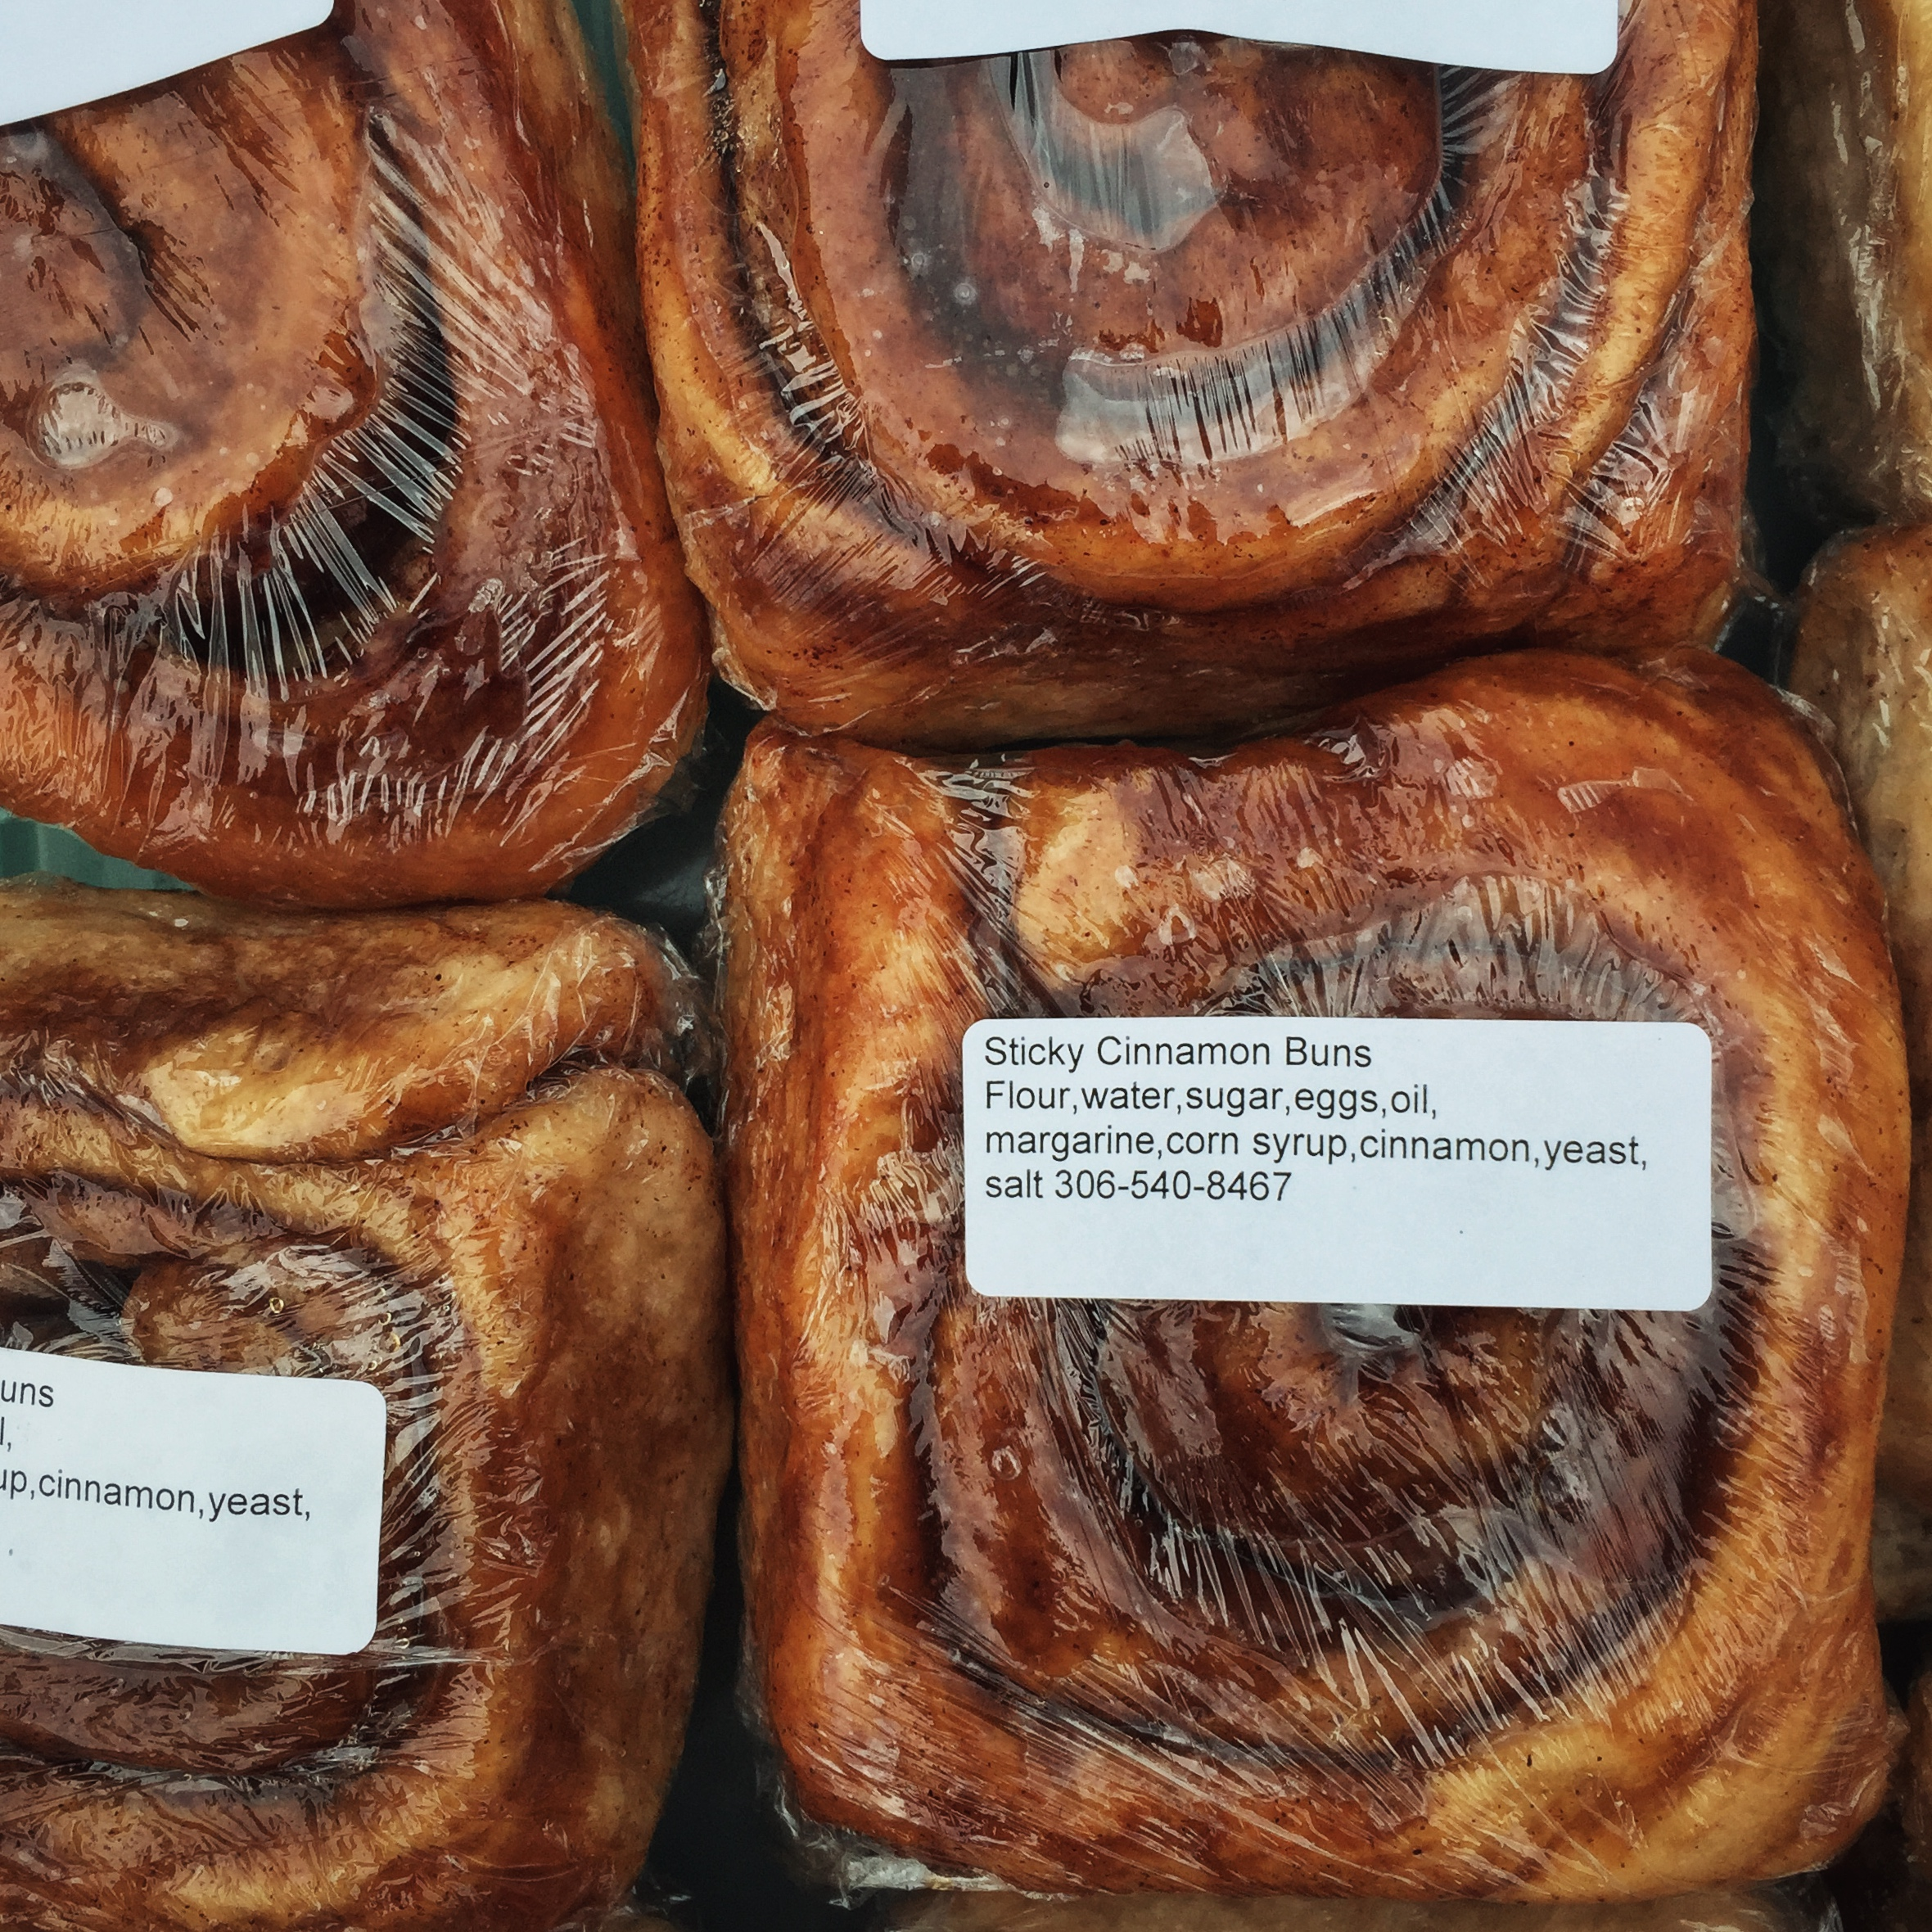 Street Beets Sept. 23, 2015: Market Map, Dragonscale & The Very Berry Bun Company - Image 1